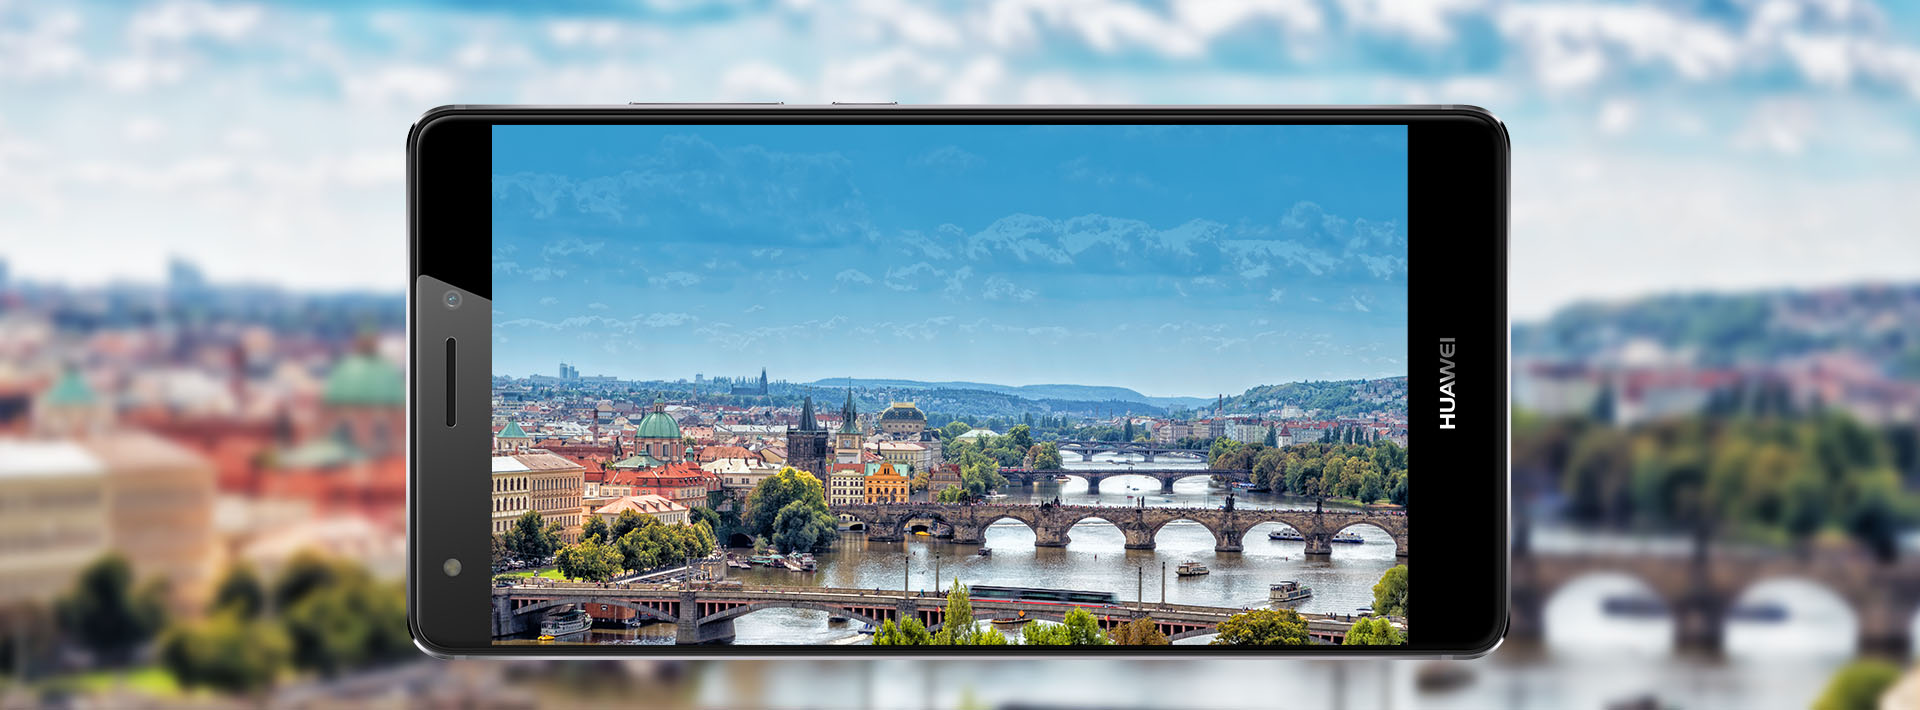 5,5'' Full-HD SuperAMOLED Display